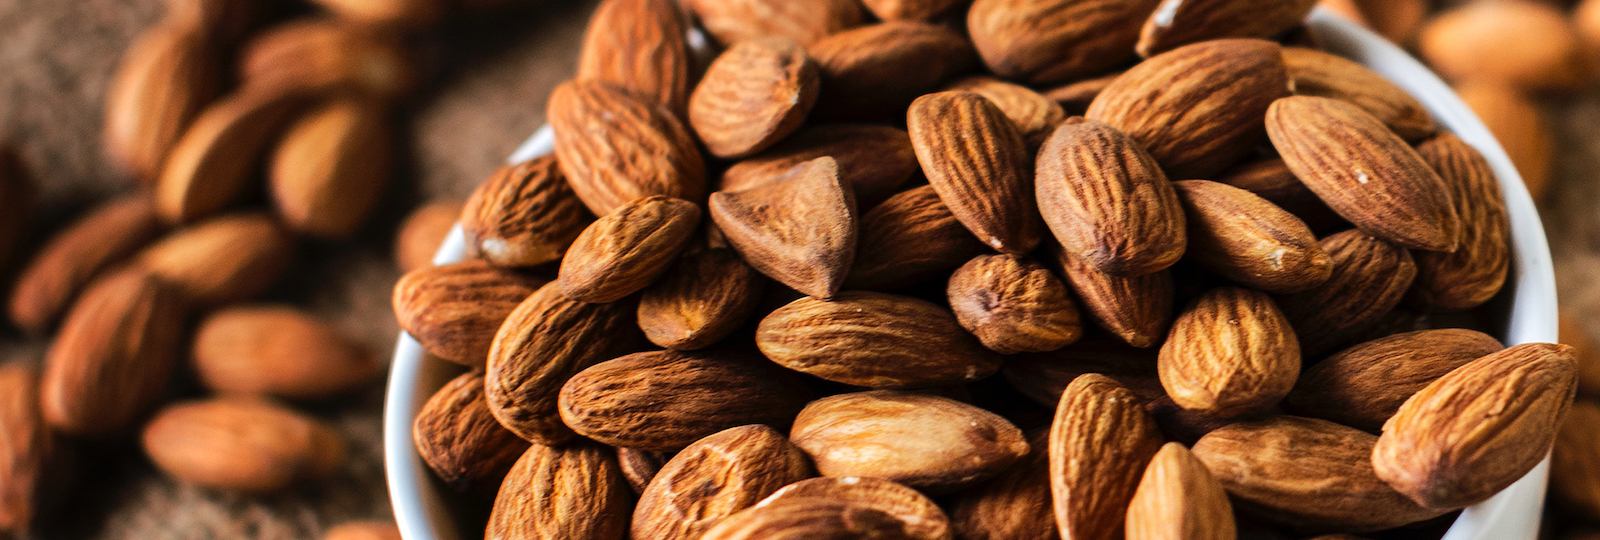 Almonds, Pistachios & Walnuts